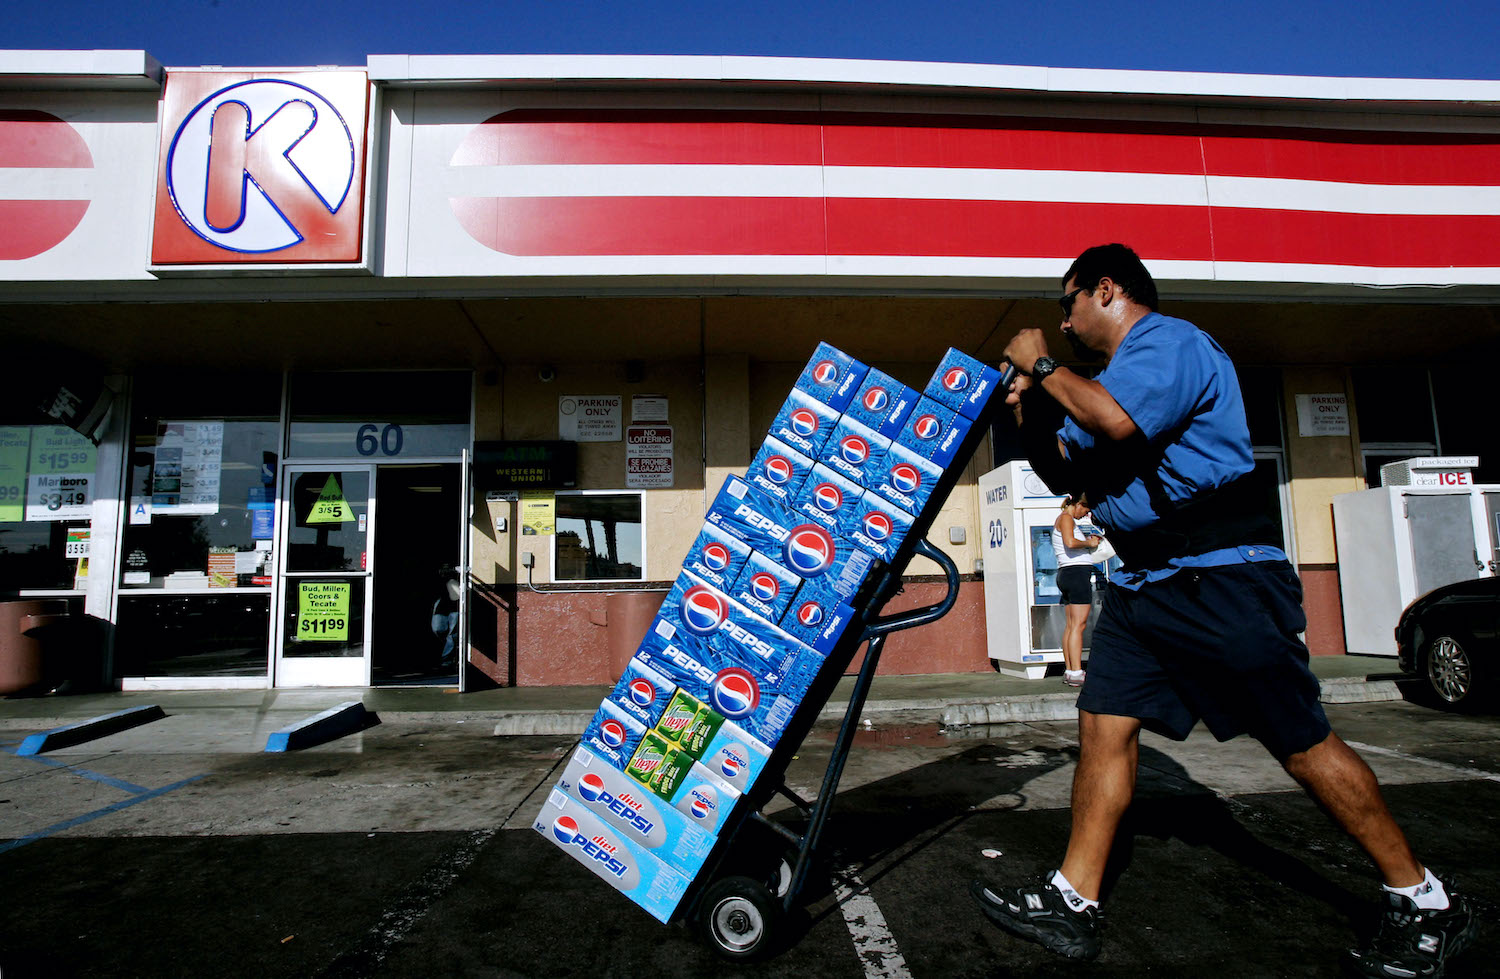 Bitcoin ATMs to Invade Circle K Convenience Stores